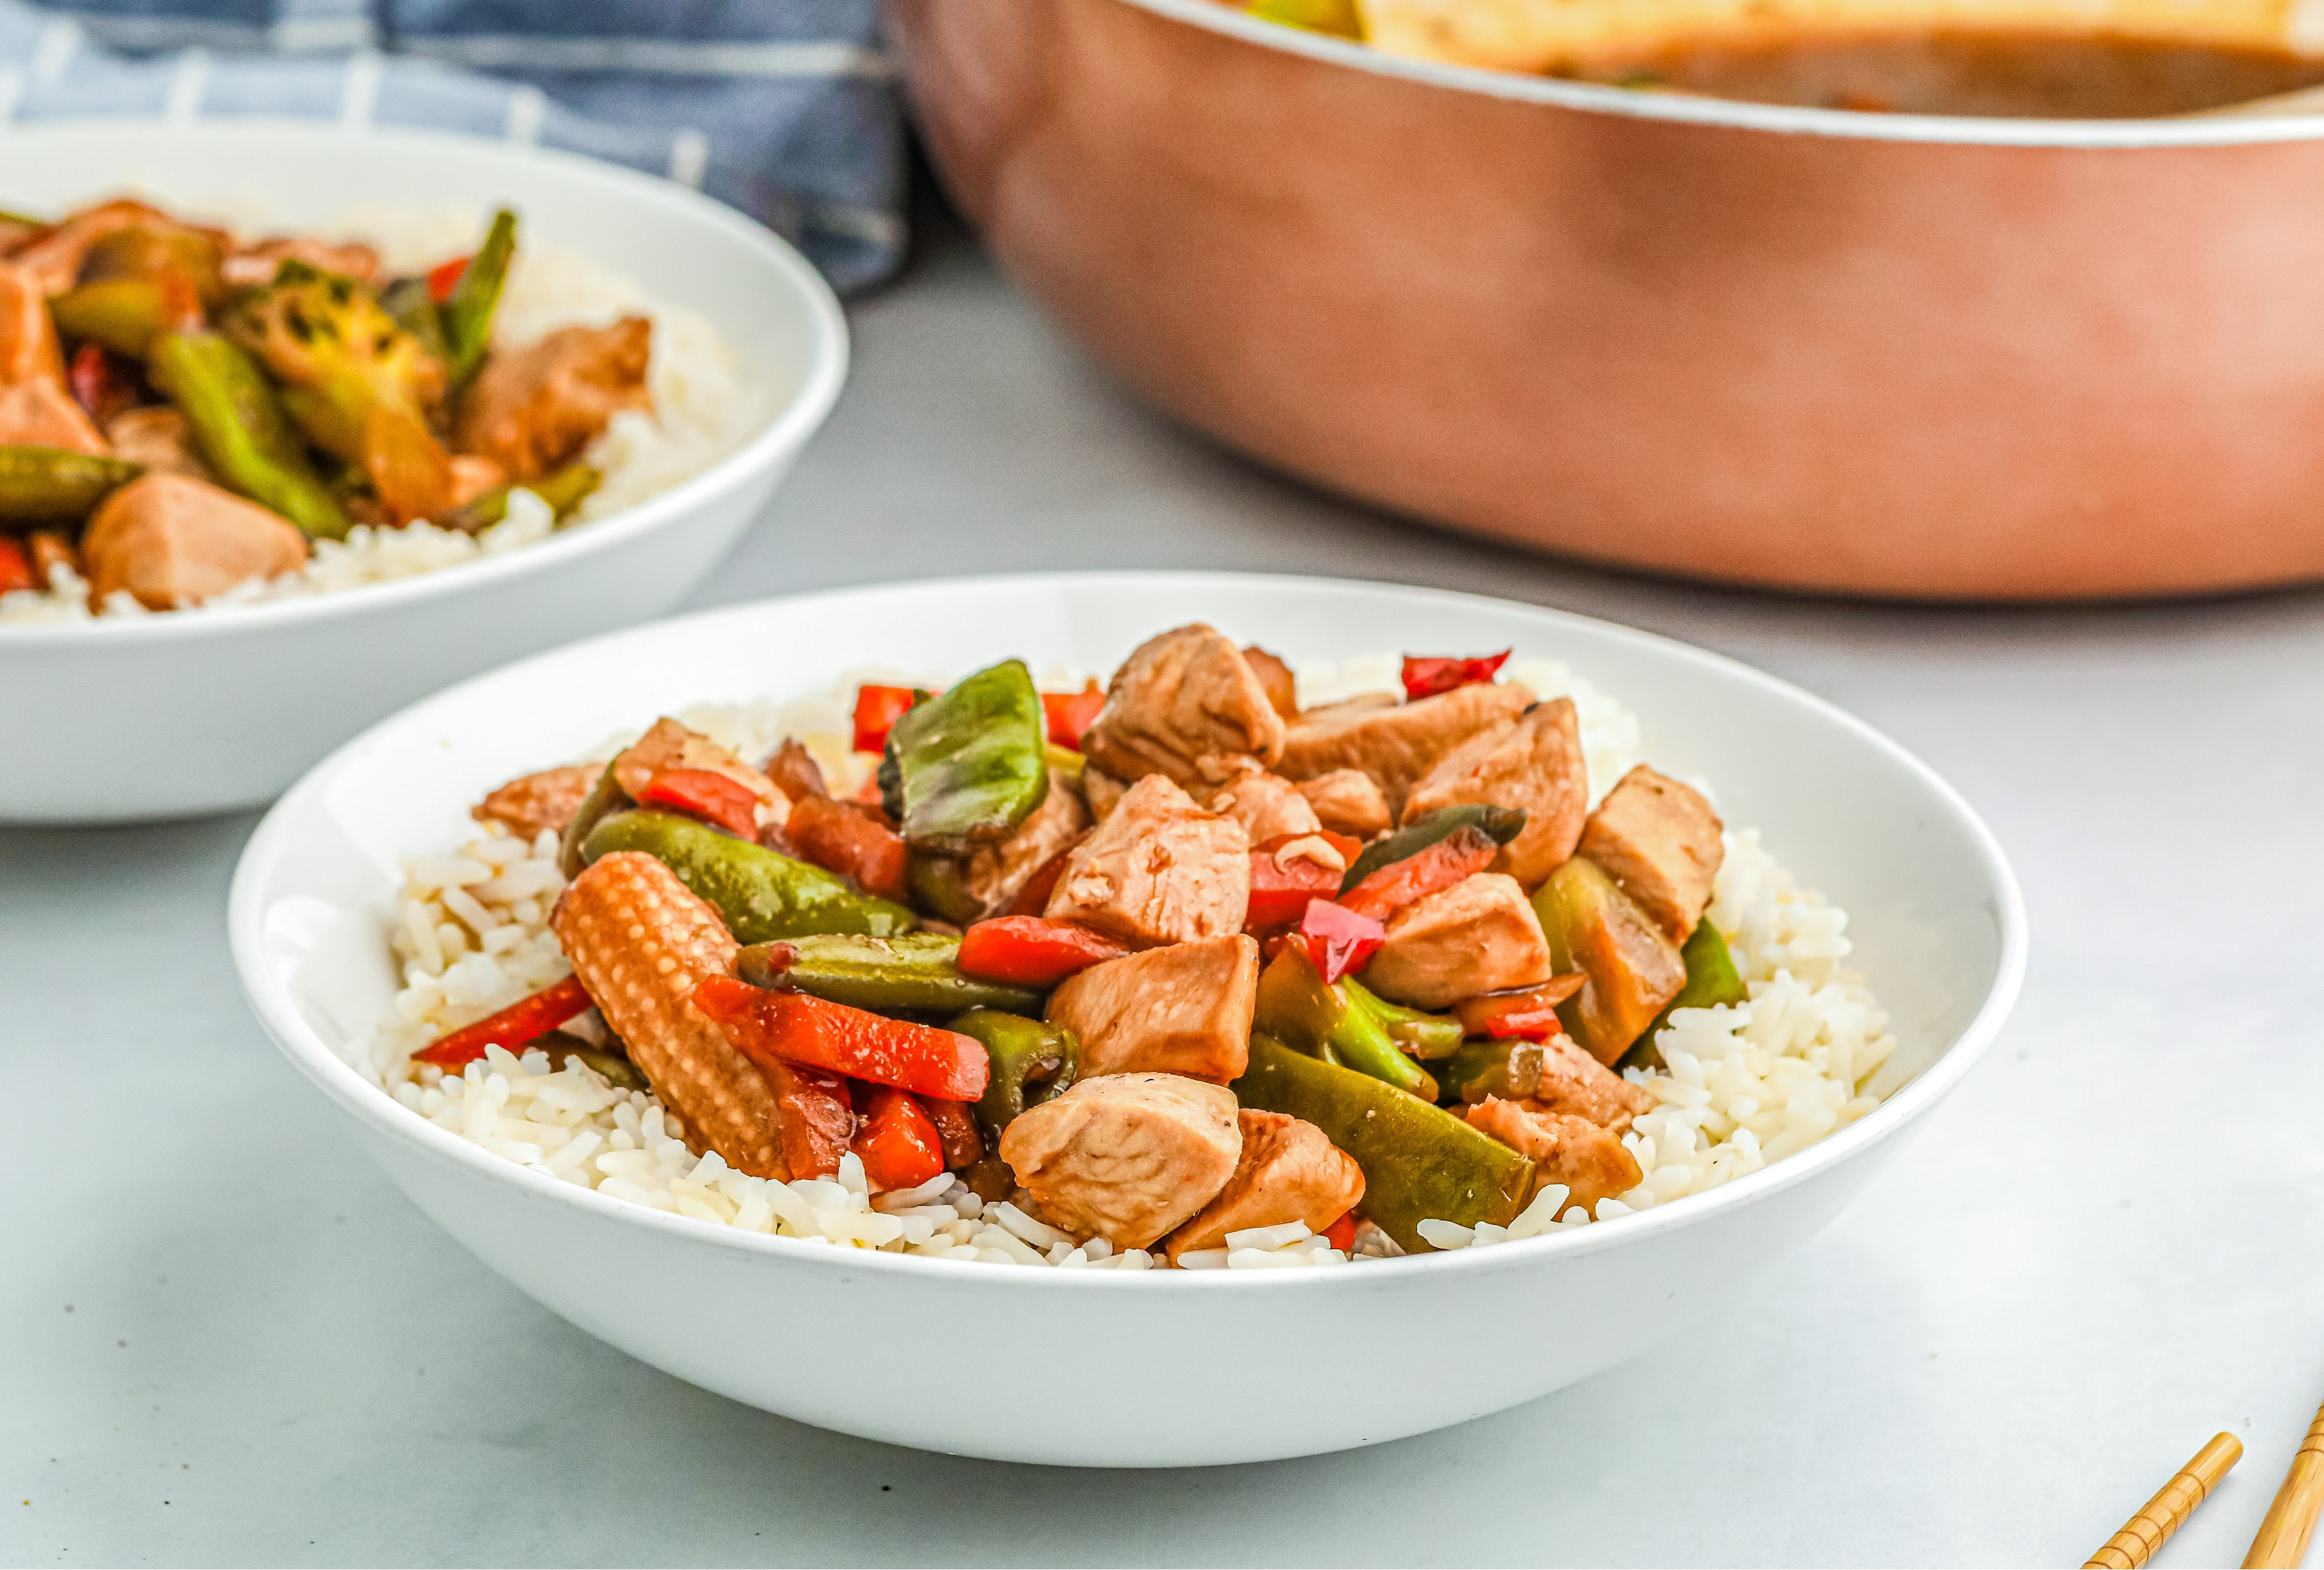 A white bowl of stir-fry over rice